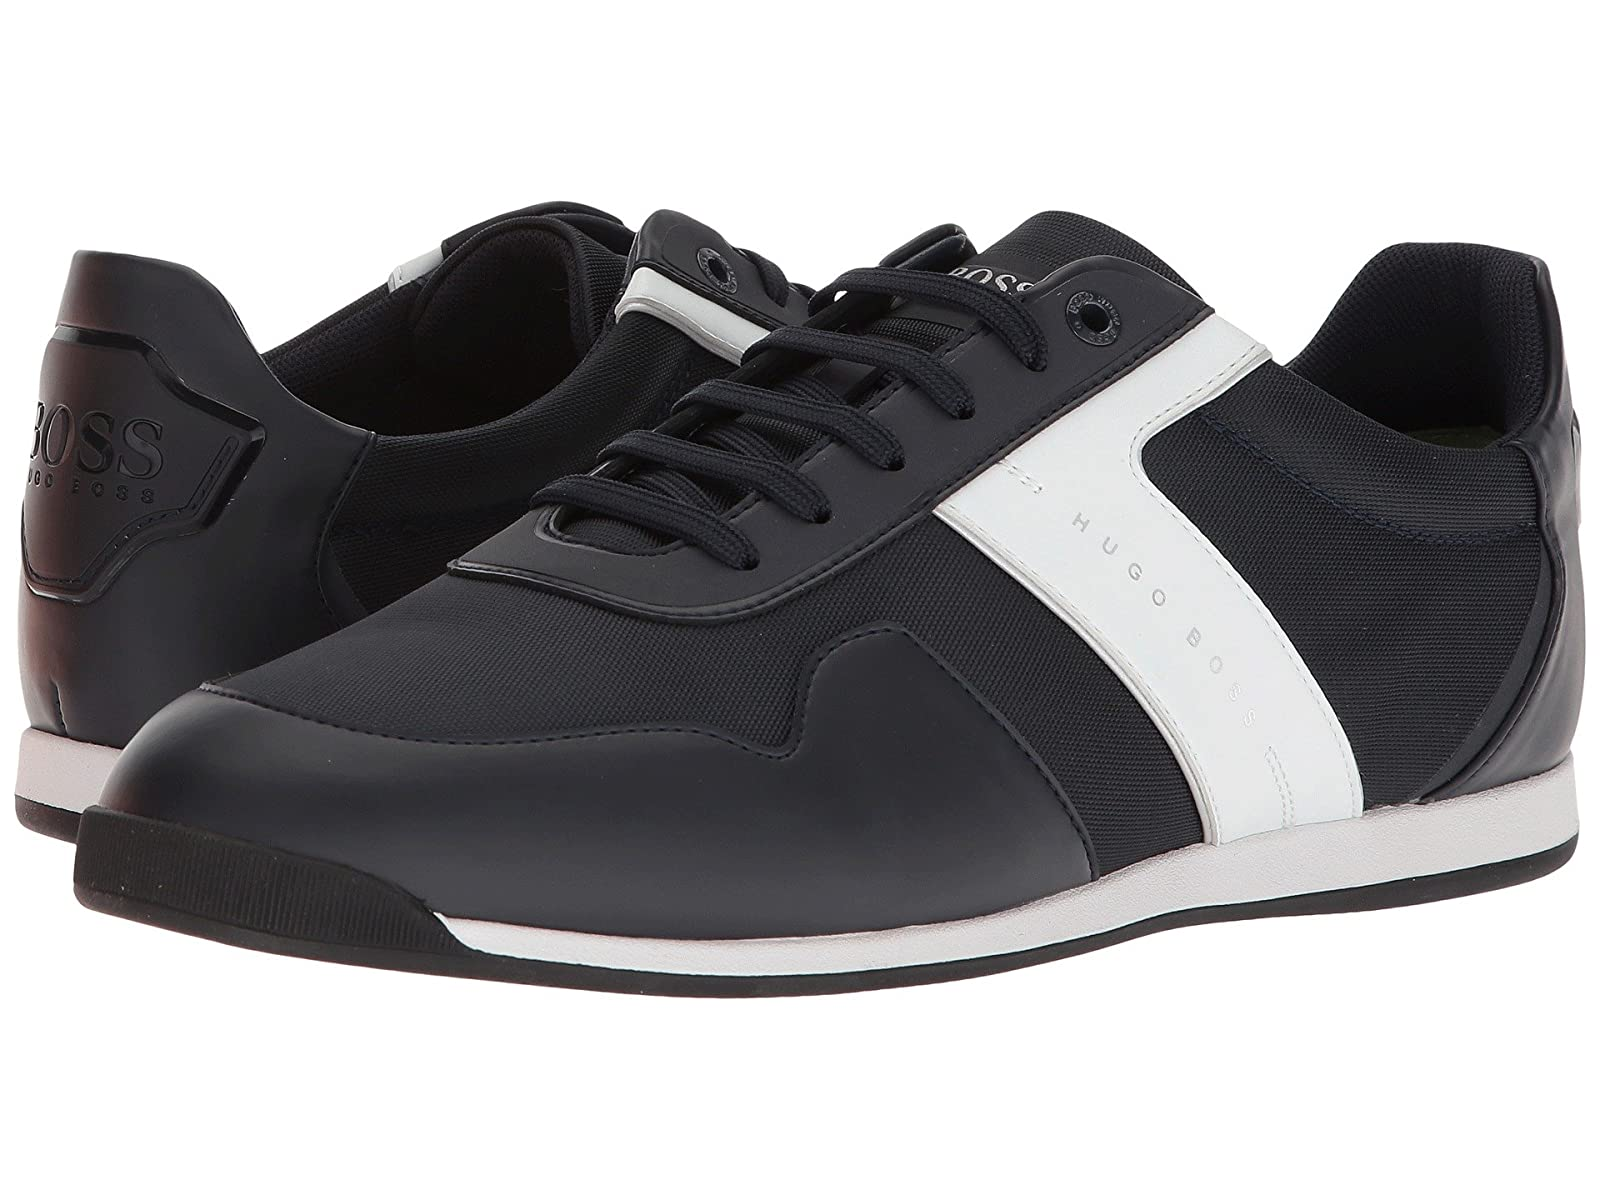 BOSS Hugo Boss Maze Low Profile Sneaker By Boss GreenAtmospheric grades have affordable shoes